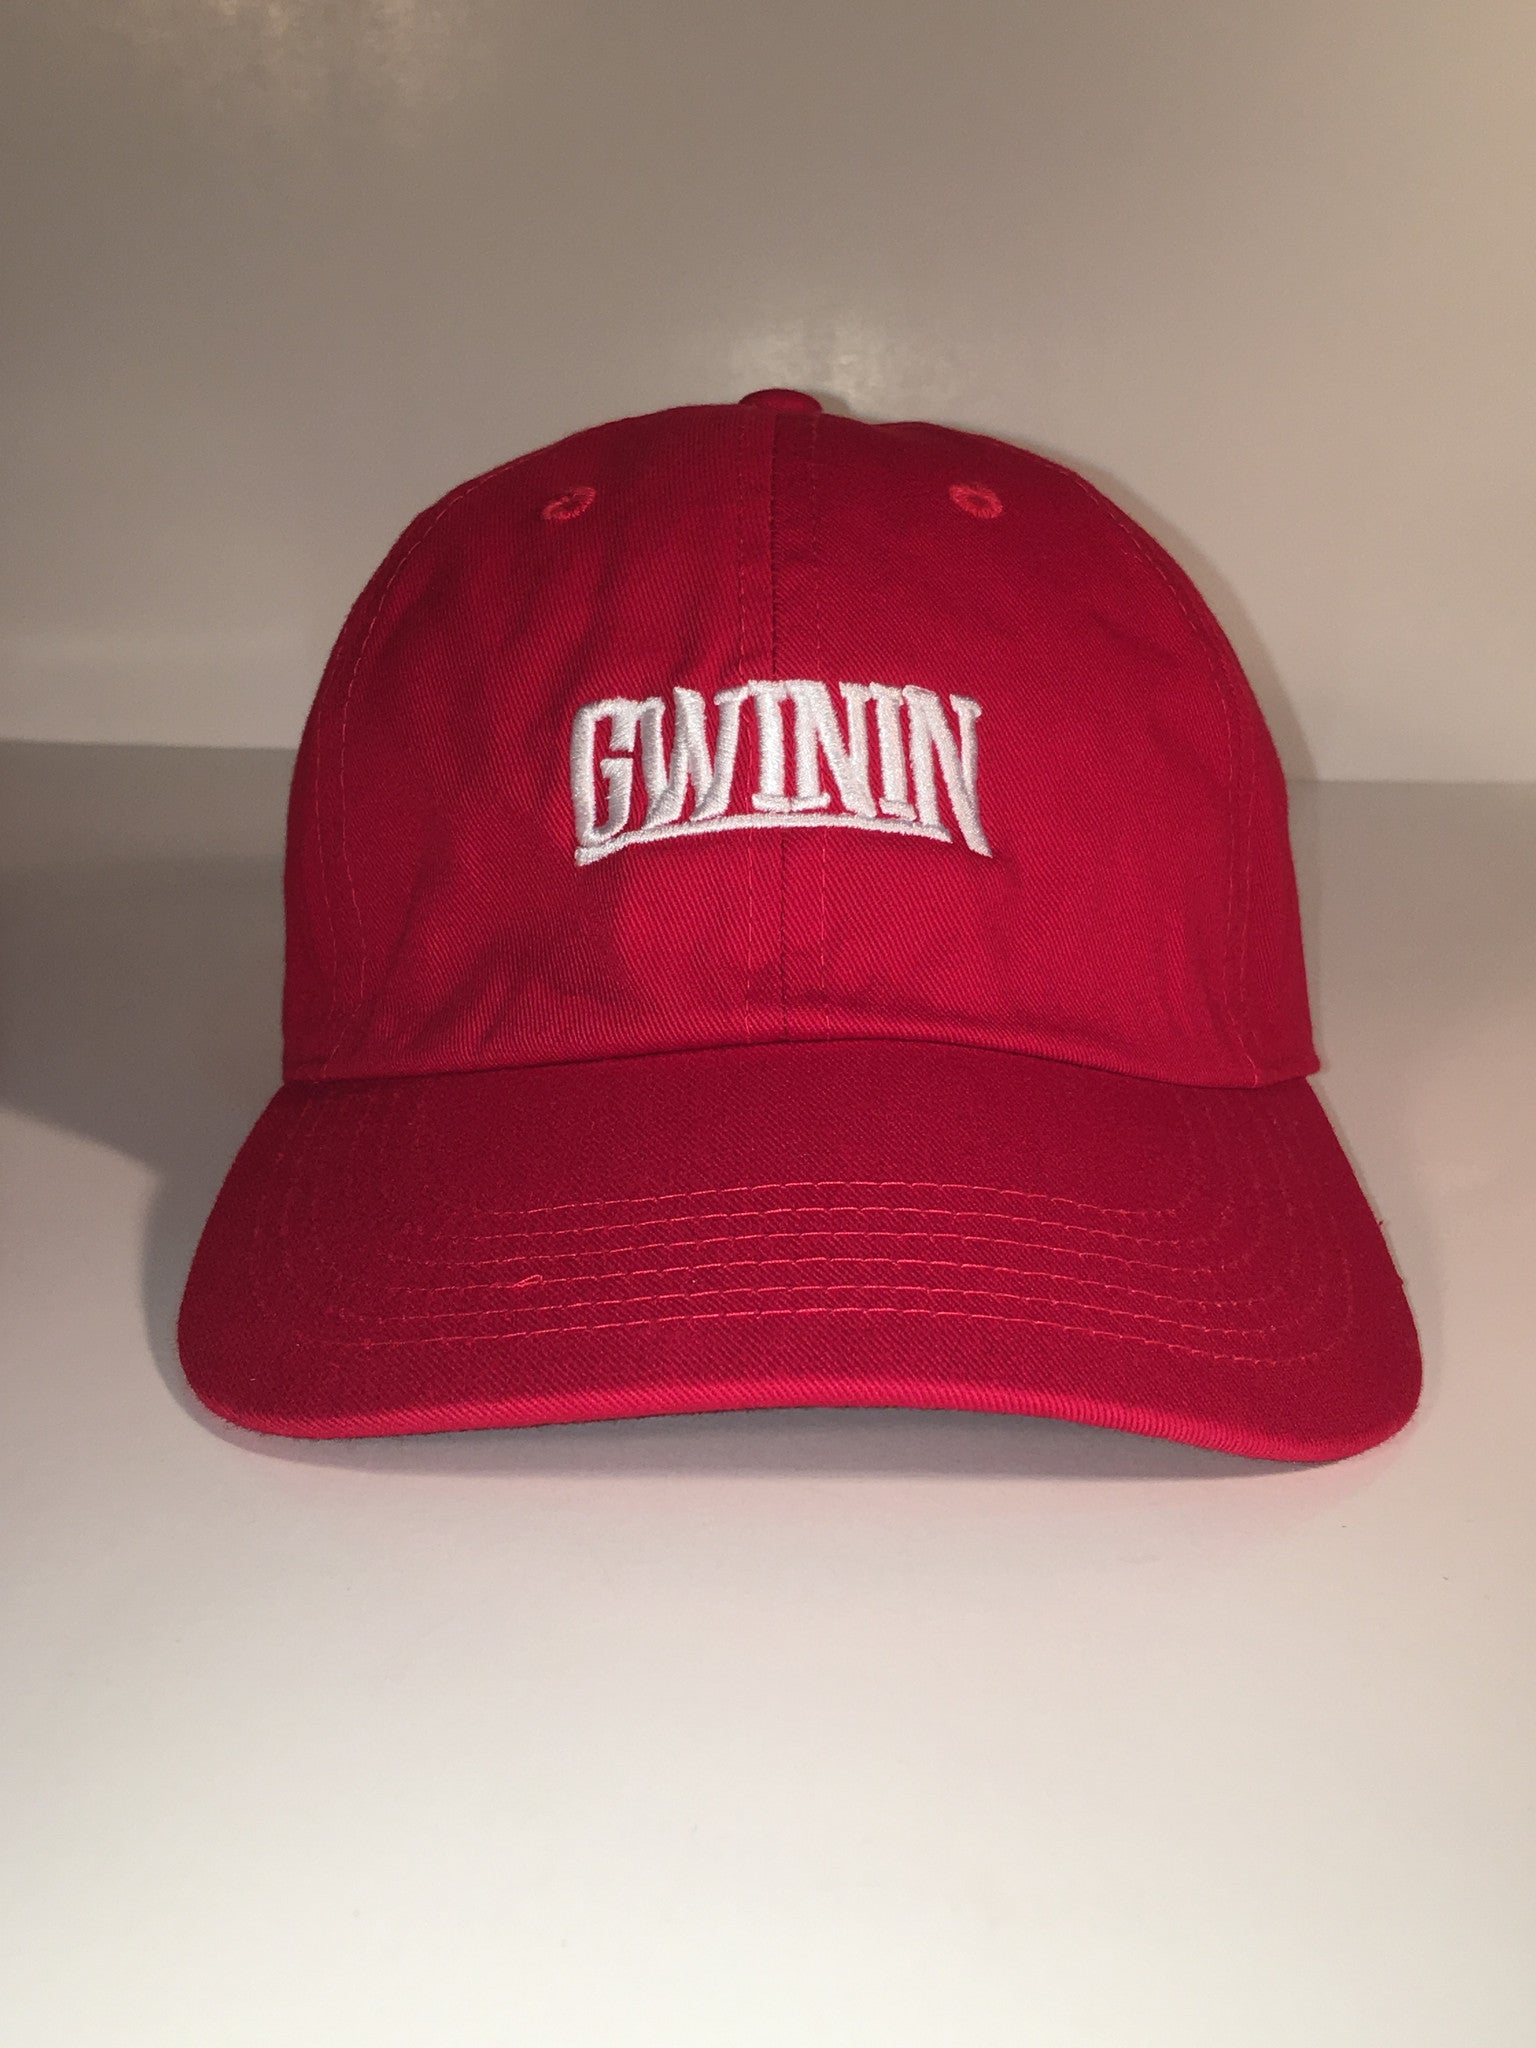 Classic Gwinin All Red Caps